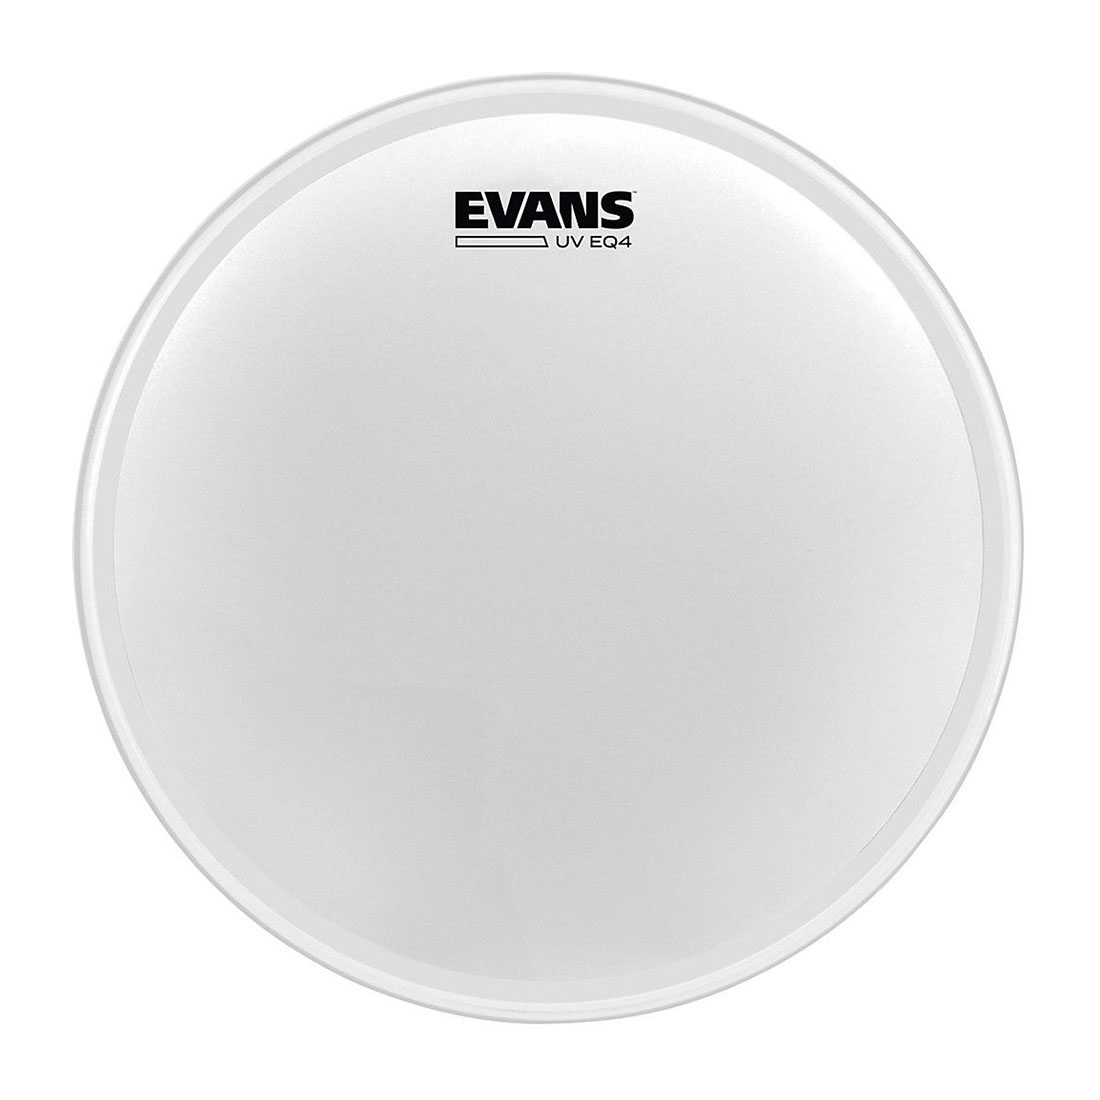 "Evans 16"" UV EQ4 Coated Bass Drum Head"